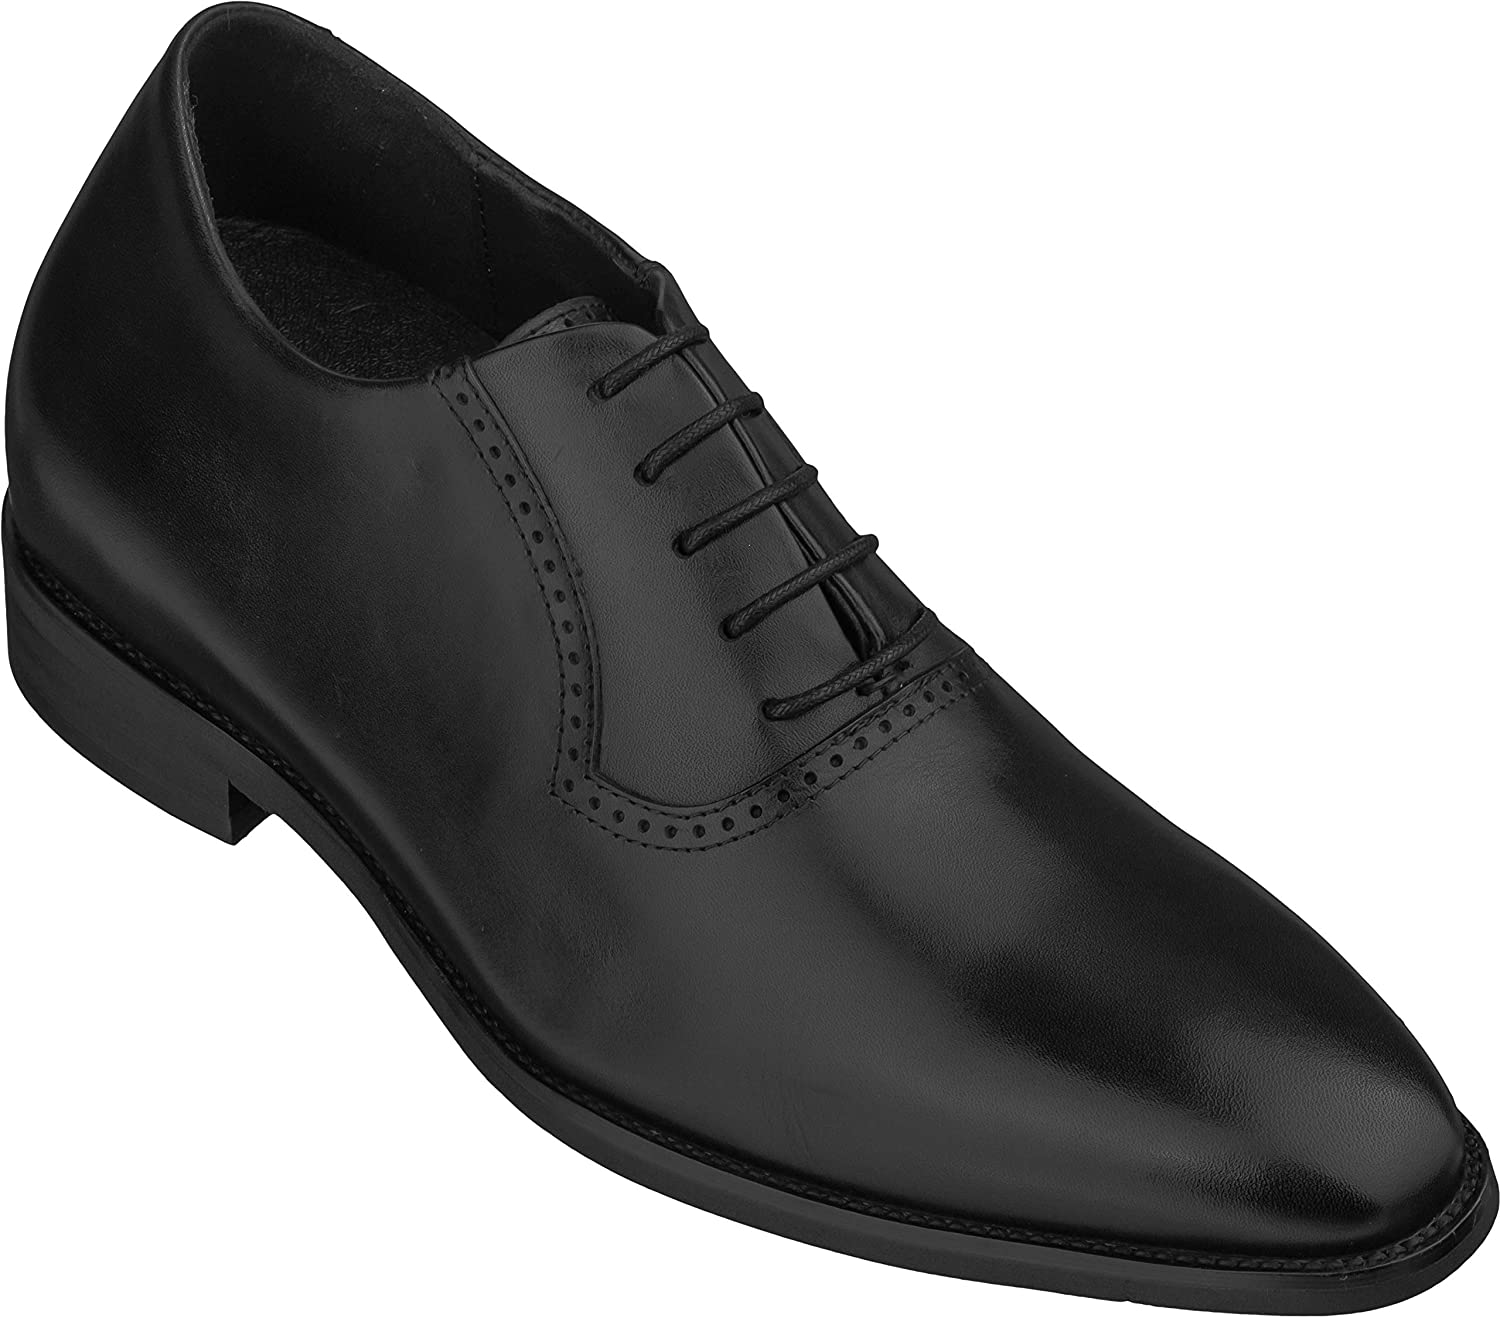 CALTO Men's Invisible Height Increasing Elevator Shoes - Black Premium Leather Lace-up Lightweight Formal Oxfords - 3 Inches Taller - S3503